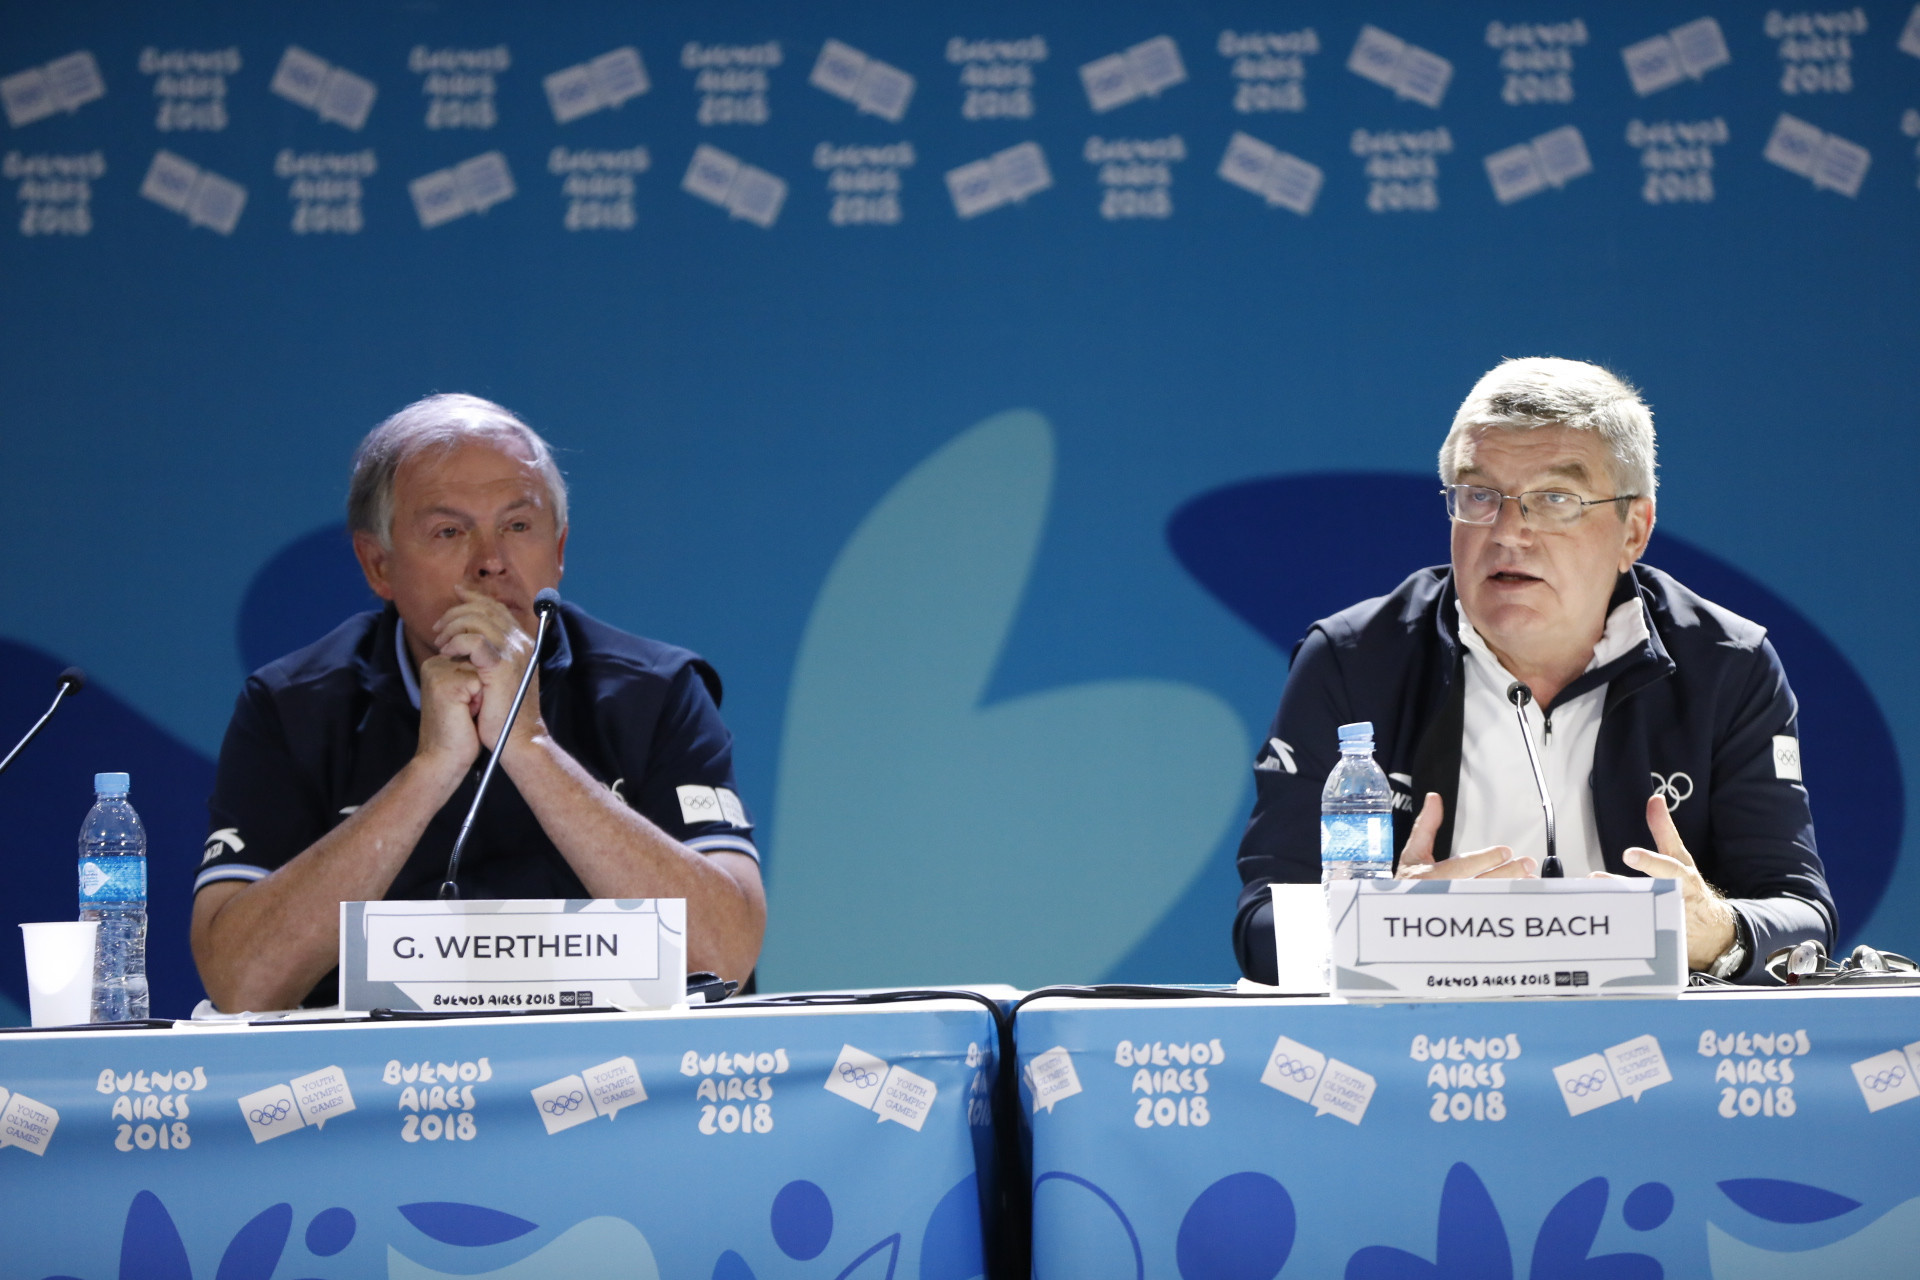 IOC President Thomas Bach talked up Argentina's possibly candidacy for the 2032 Olympics ©Buenos Aires 2018